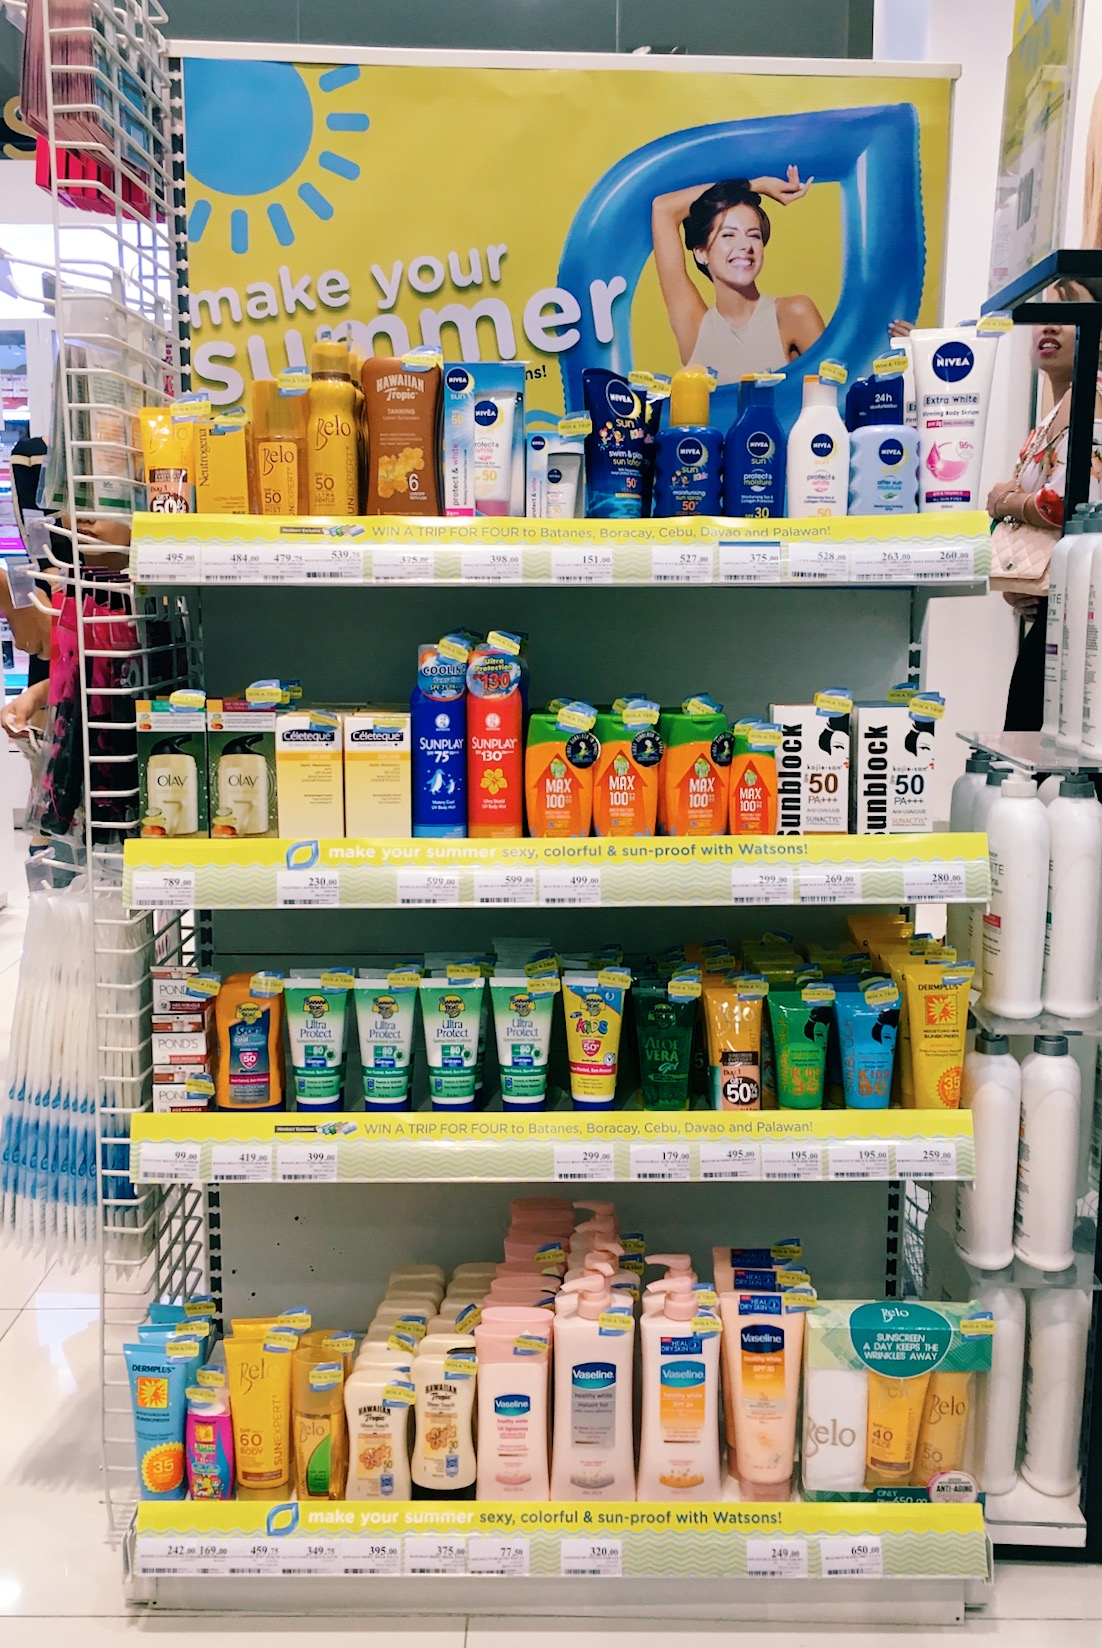 Watsons Make Your Summer